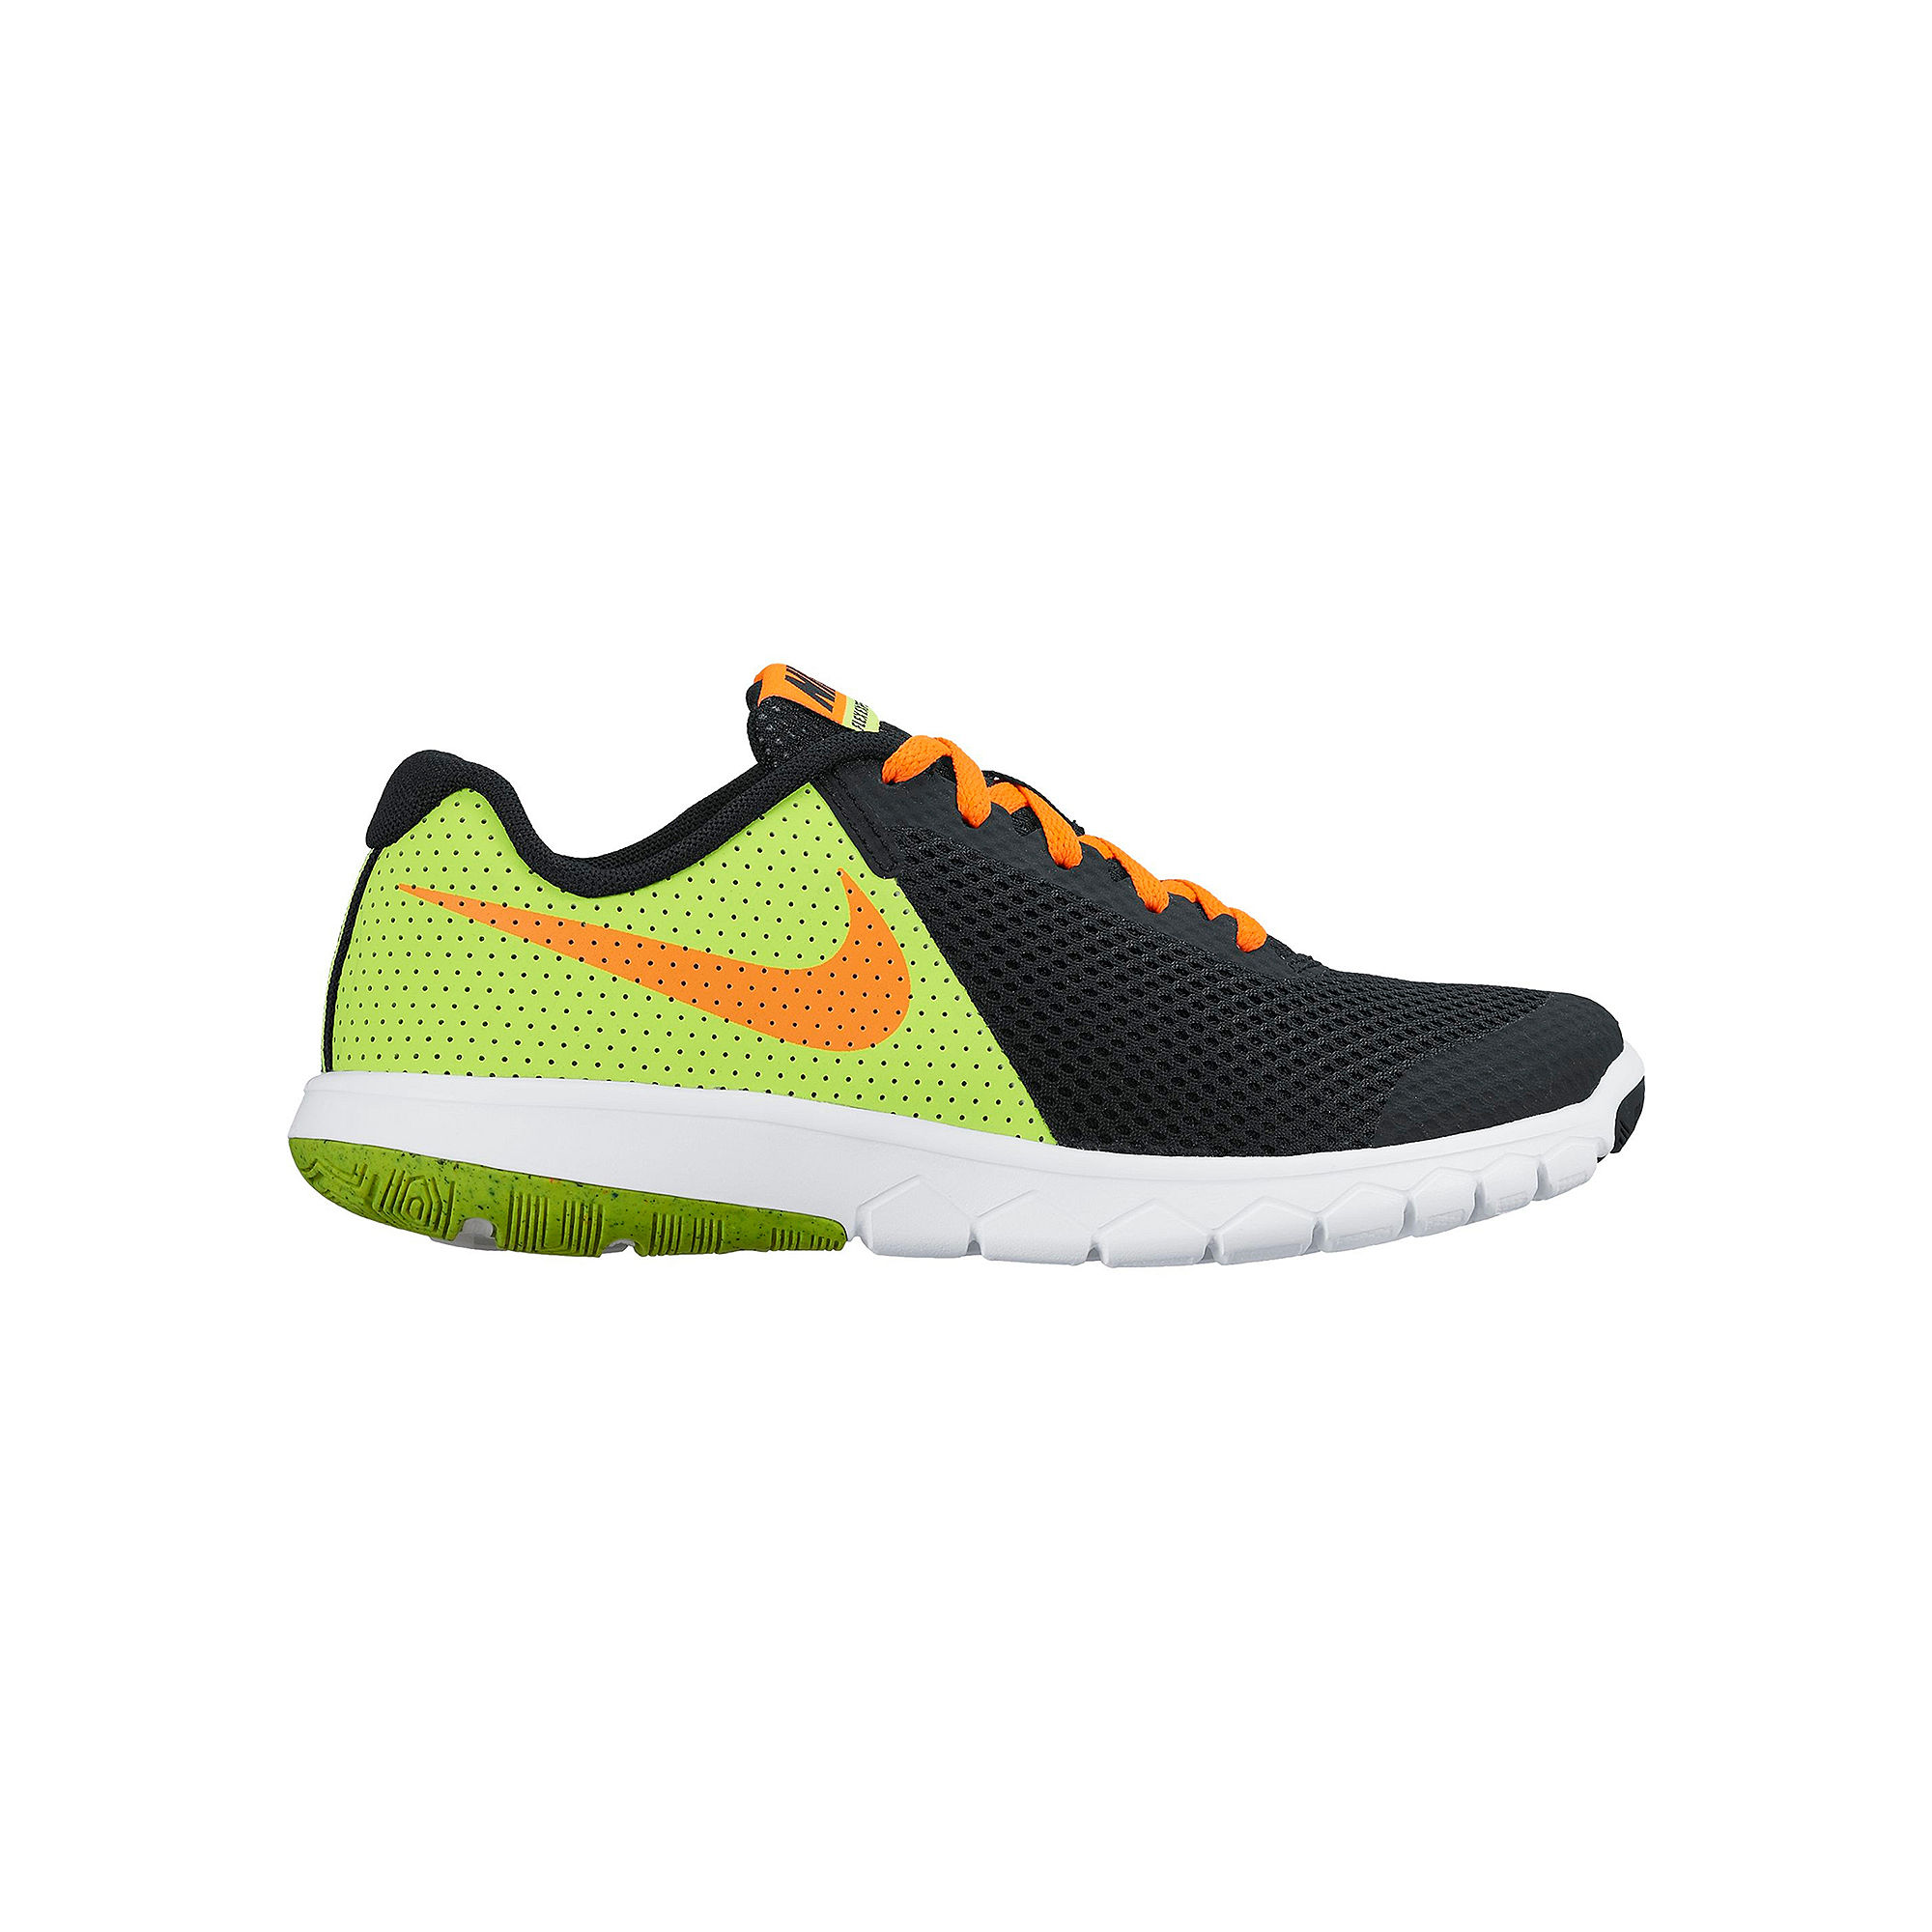 75d8b0ebc6e UPC 883418457617. ZOOM. UPC 883418457617 has following Product Name  Variations  Nike Boys  Flex Experience 5 Running ...